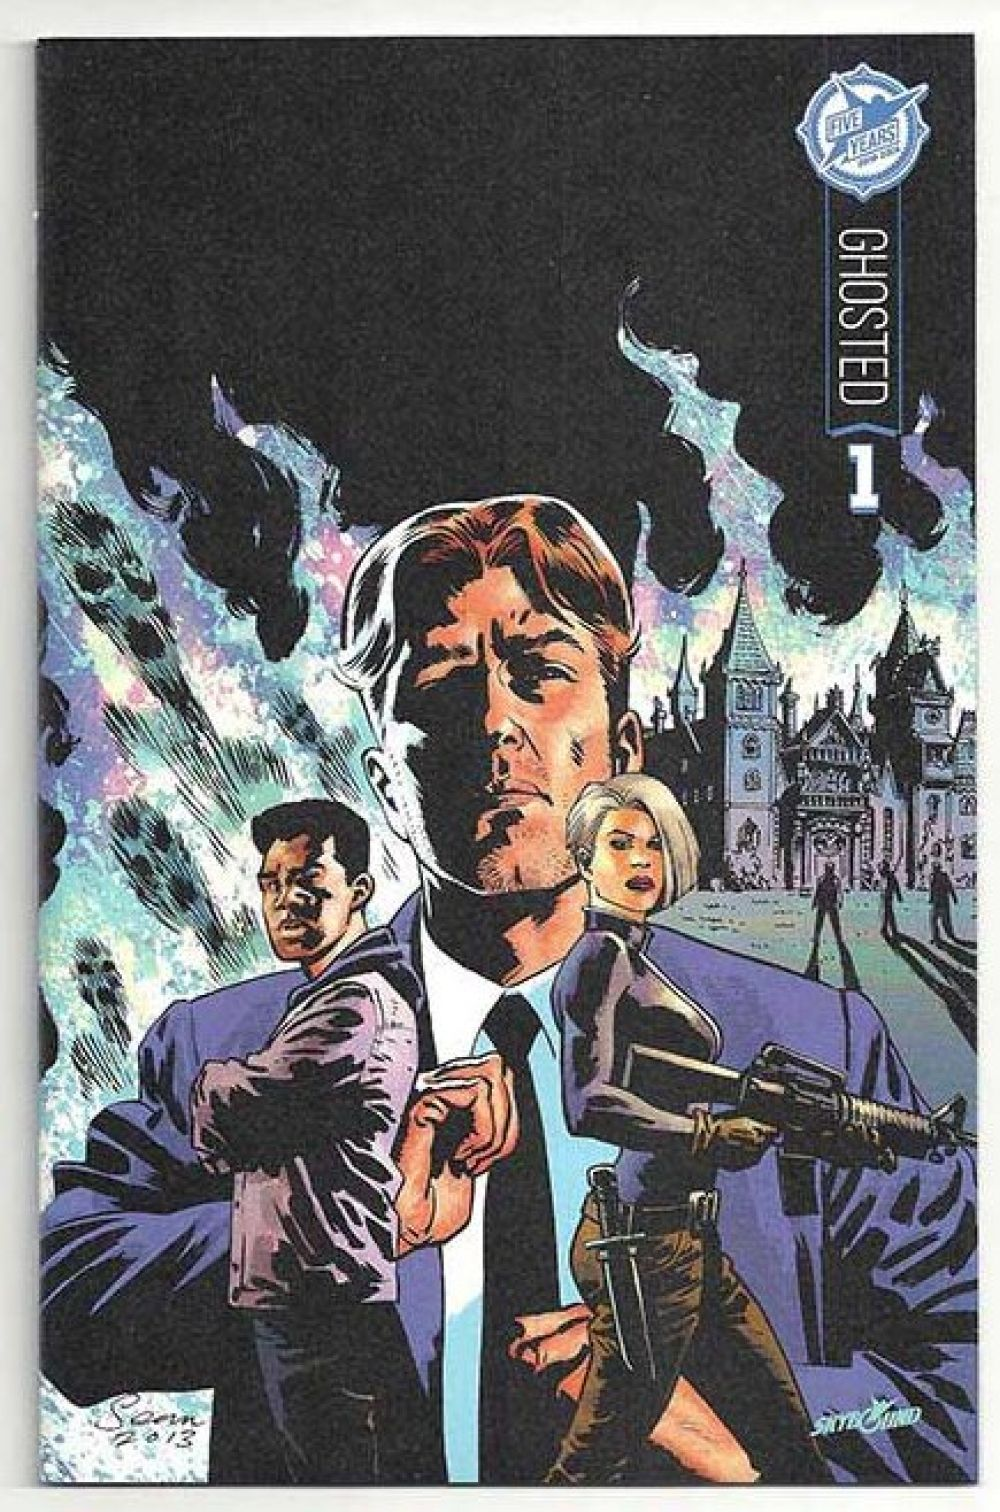 Ghosted 1 Skybound 5th Anniversary Exclusive Variant in